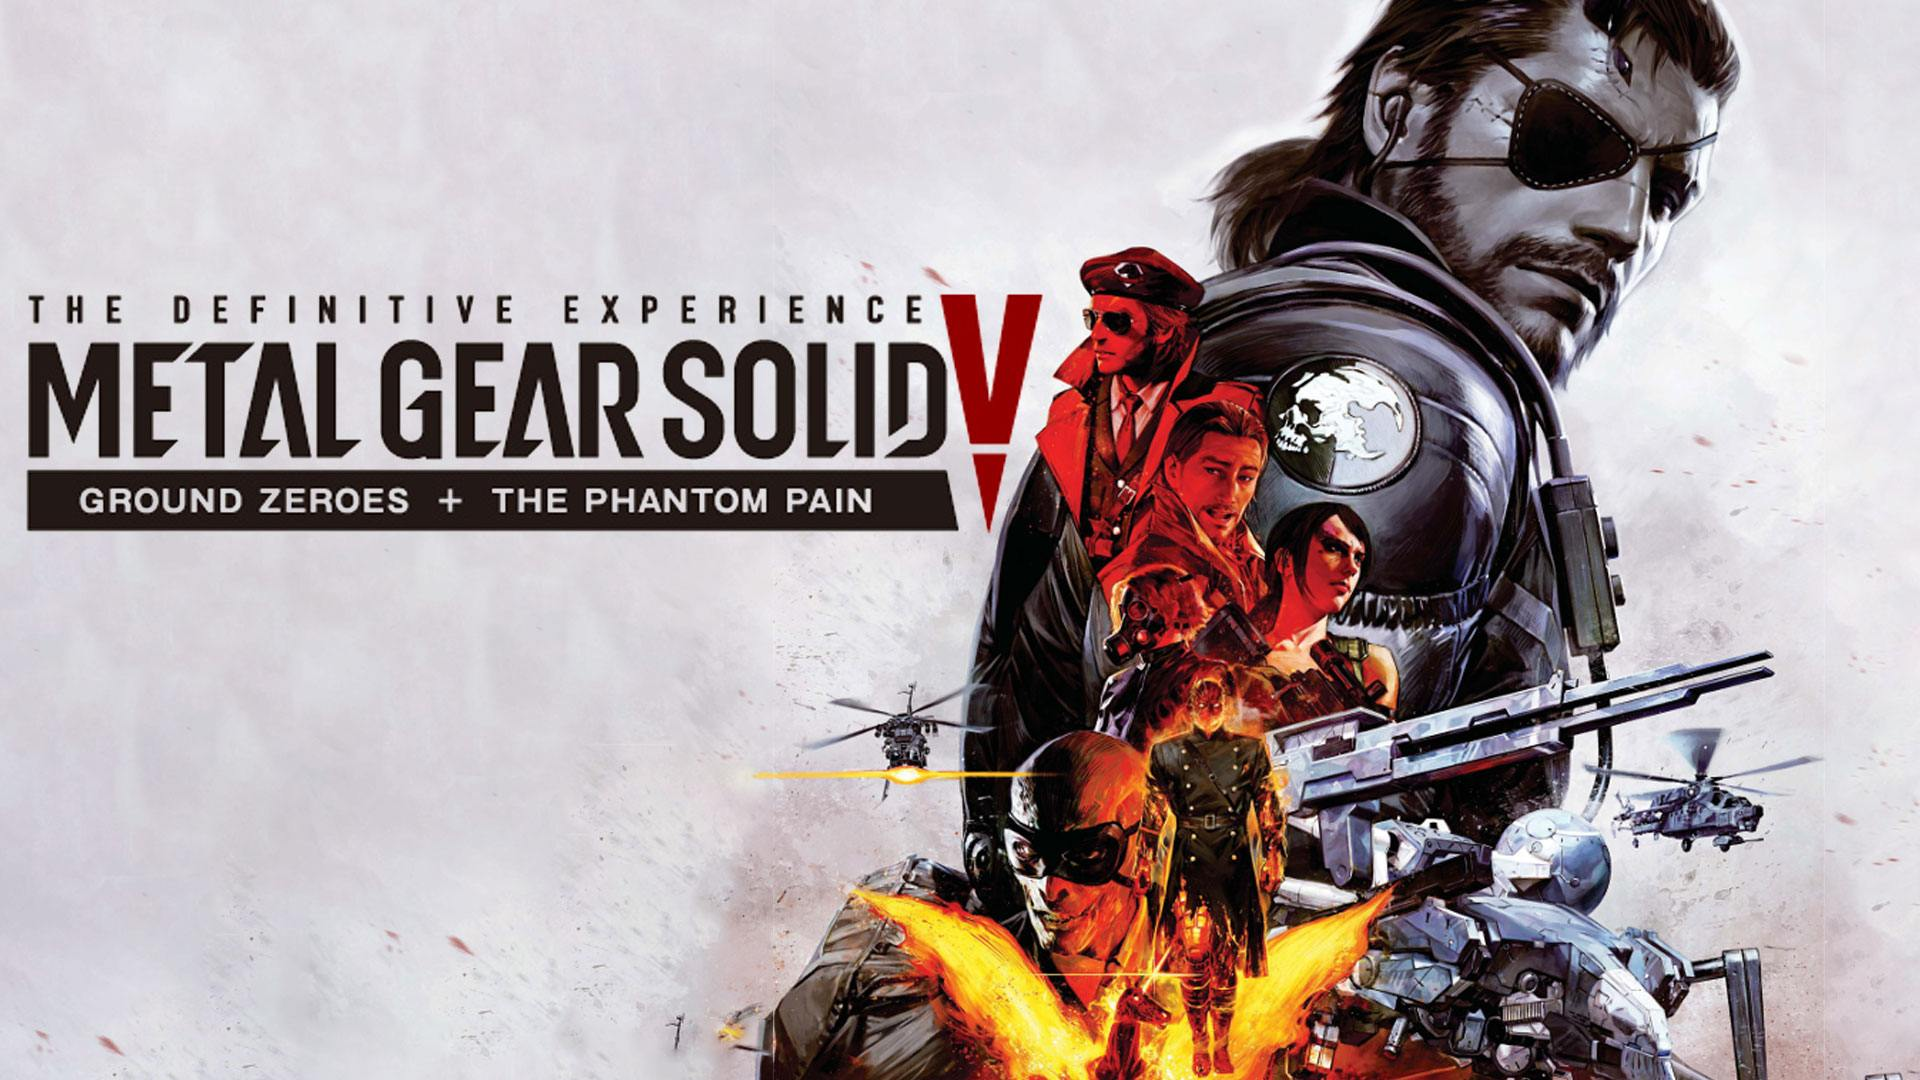 Metal Gear Solid V The Definitive Experience Pc Steam Game